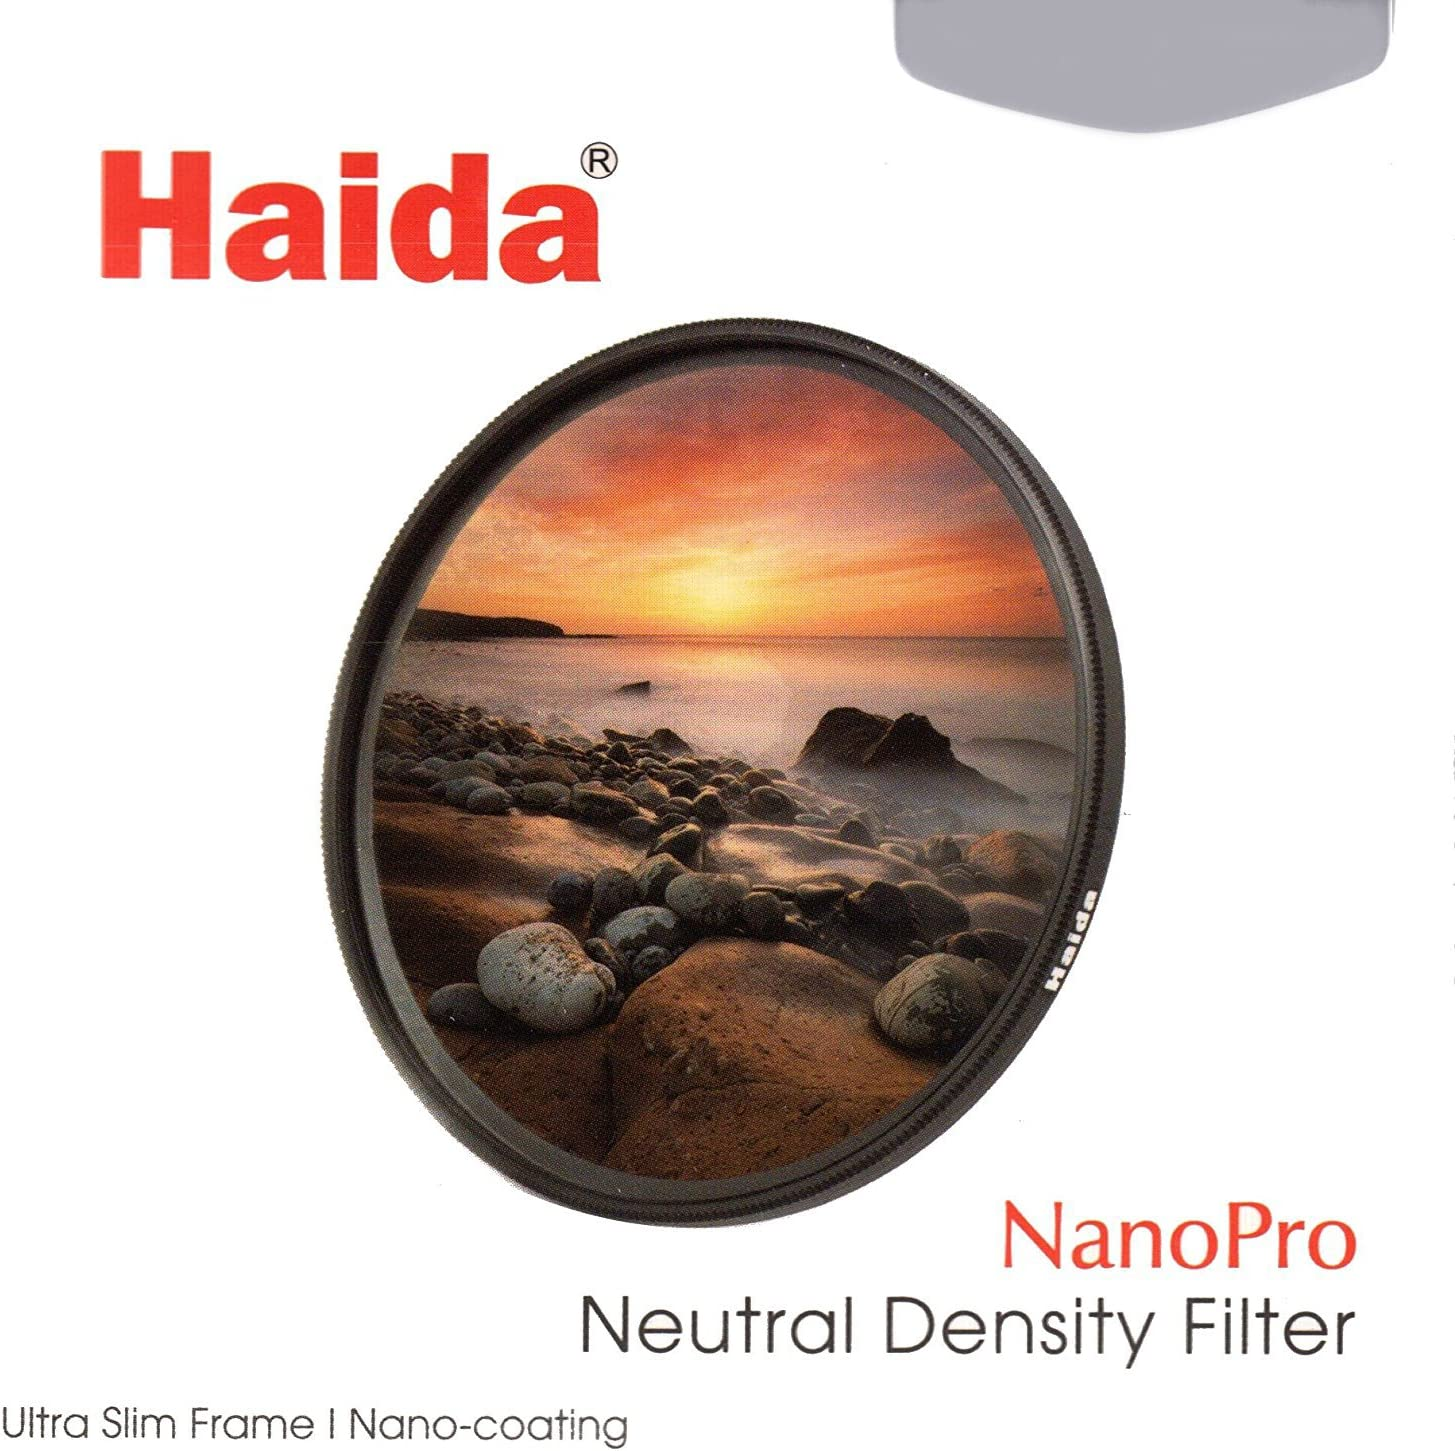 0.9 Neutral Density Multi Coated Glass Filter Haida NanoPro MC 72mm 8X